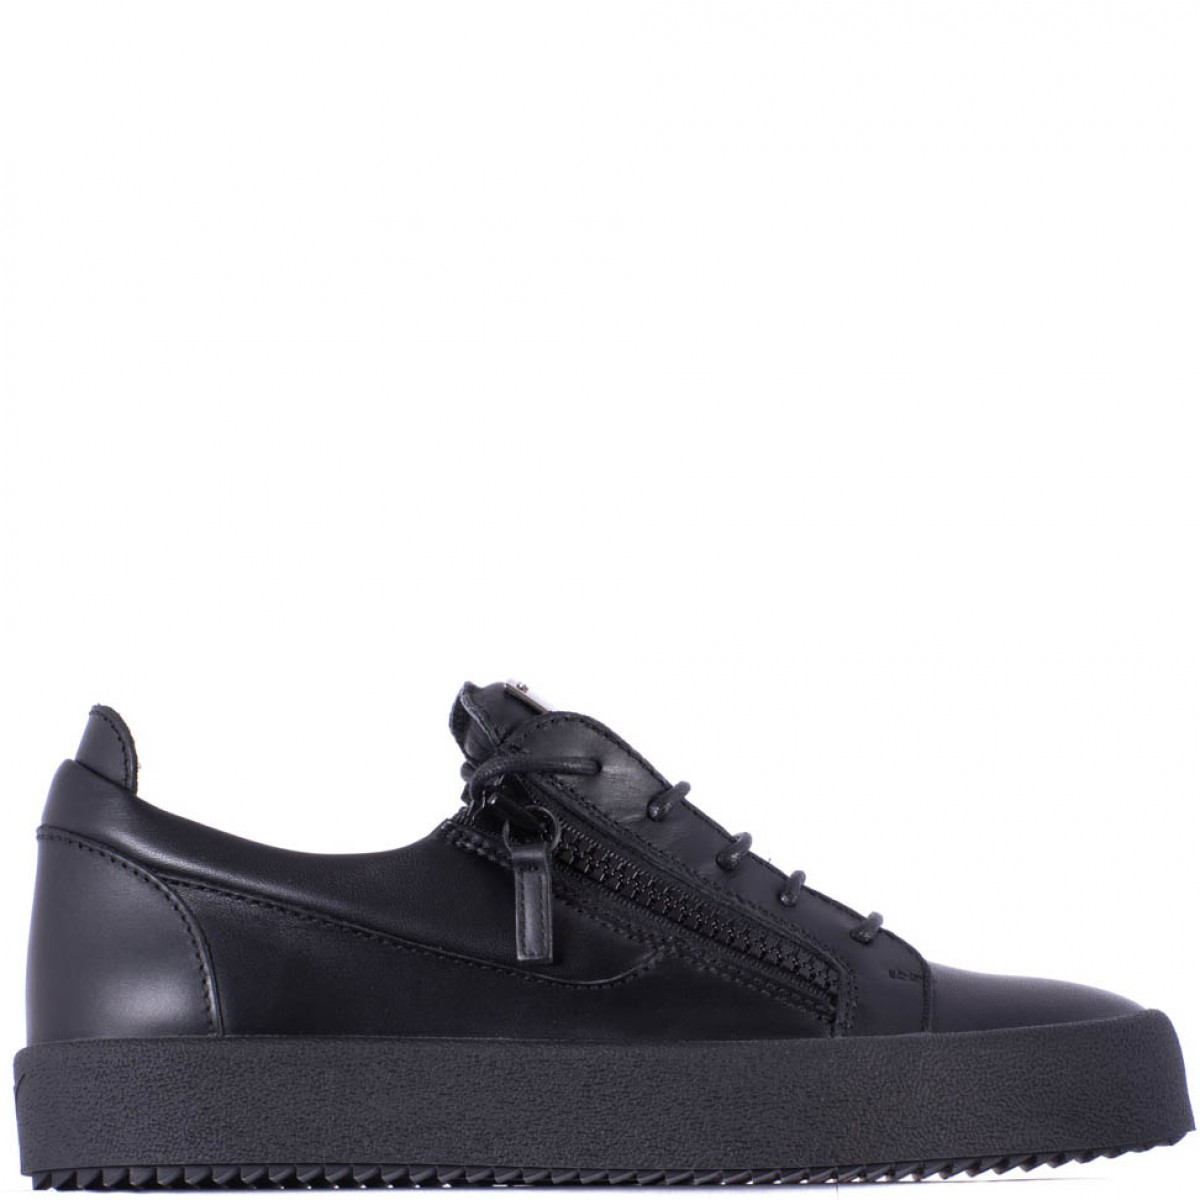 Giuseppe zanotti Black Leather Low Sneakers in Black for ...